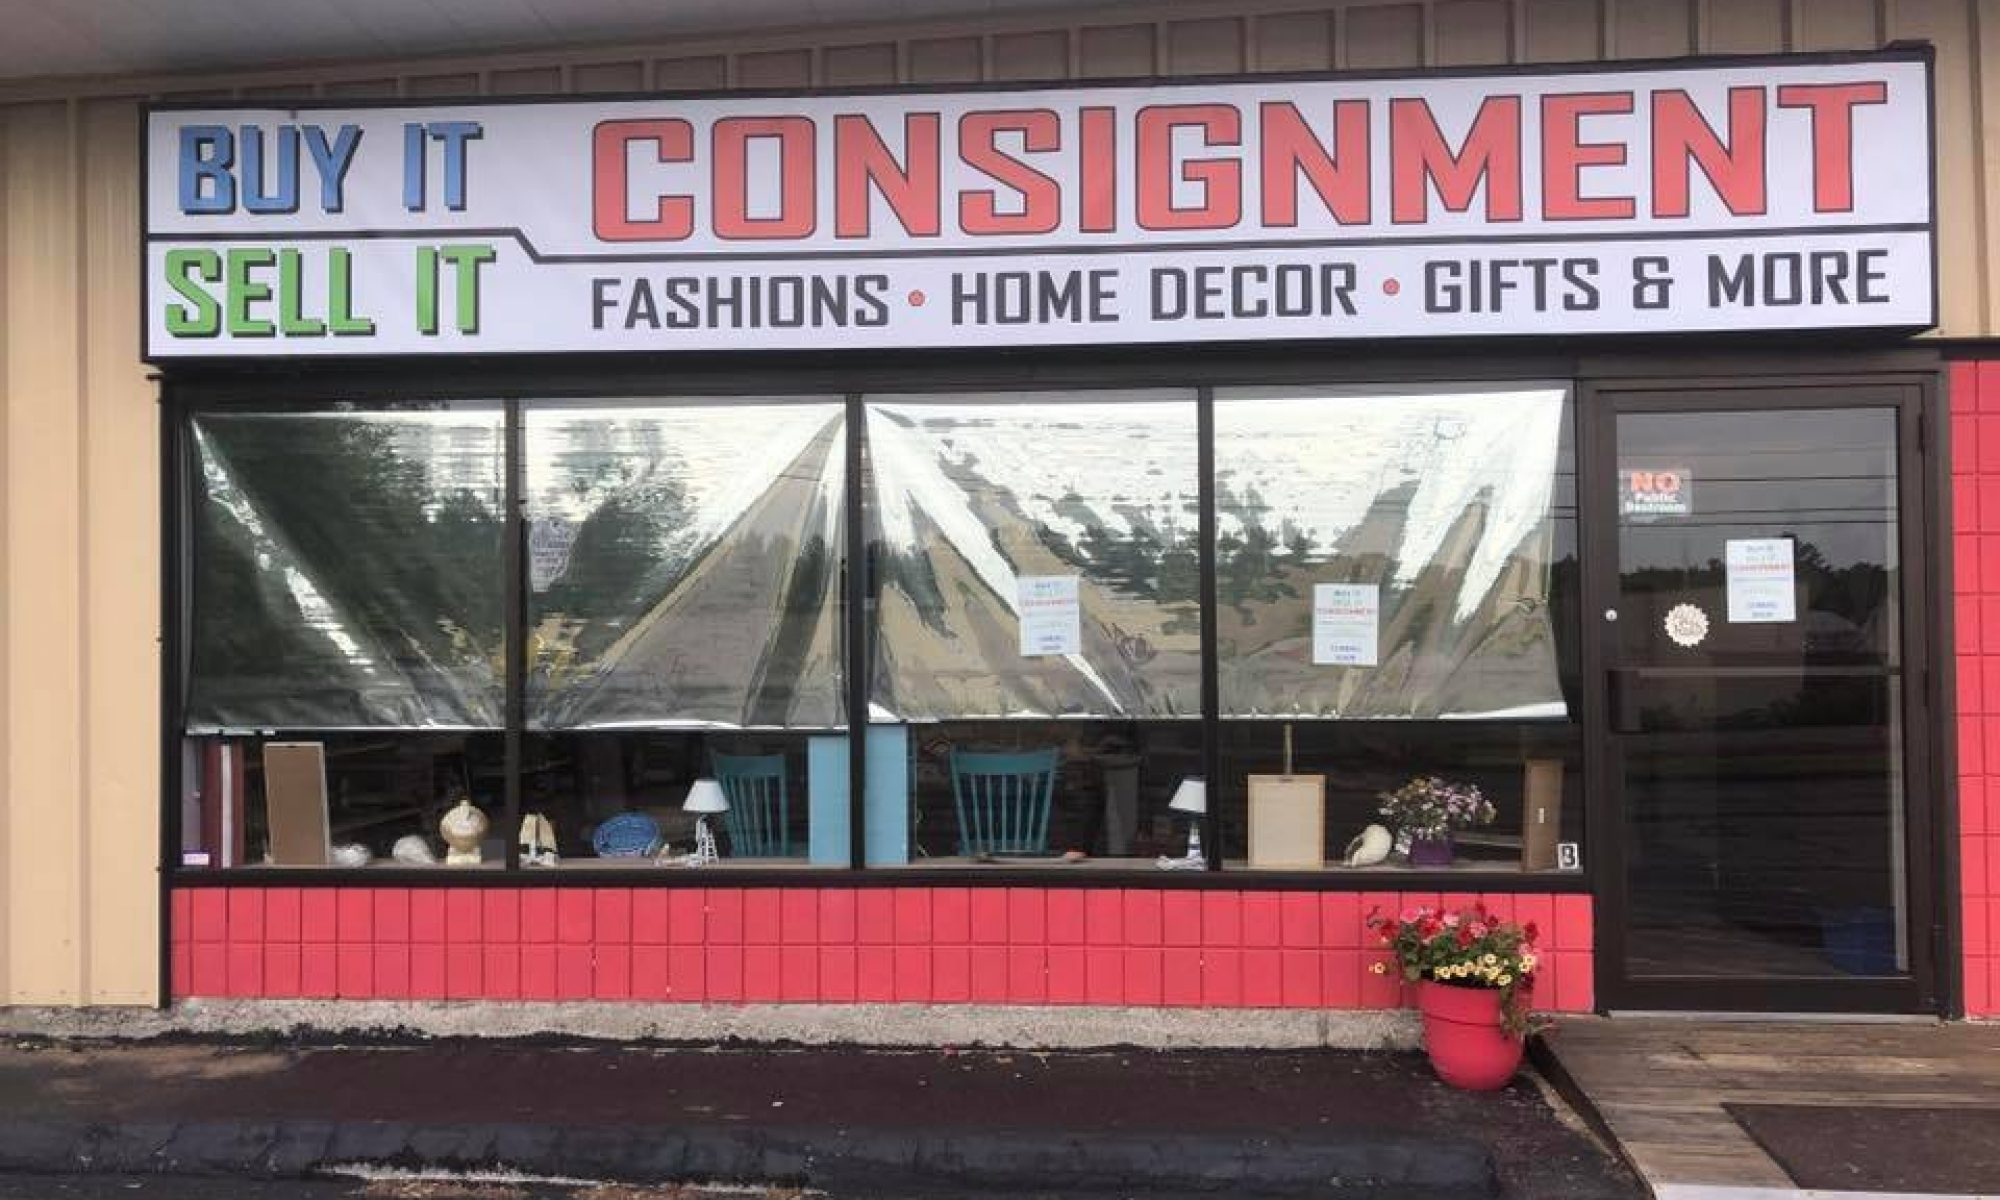 Buy It - Sell It Consignment